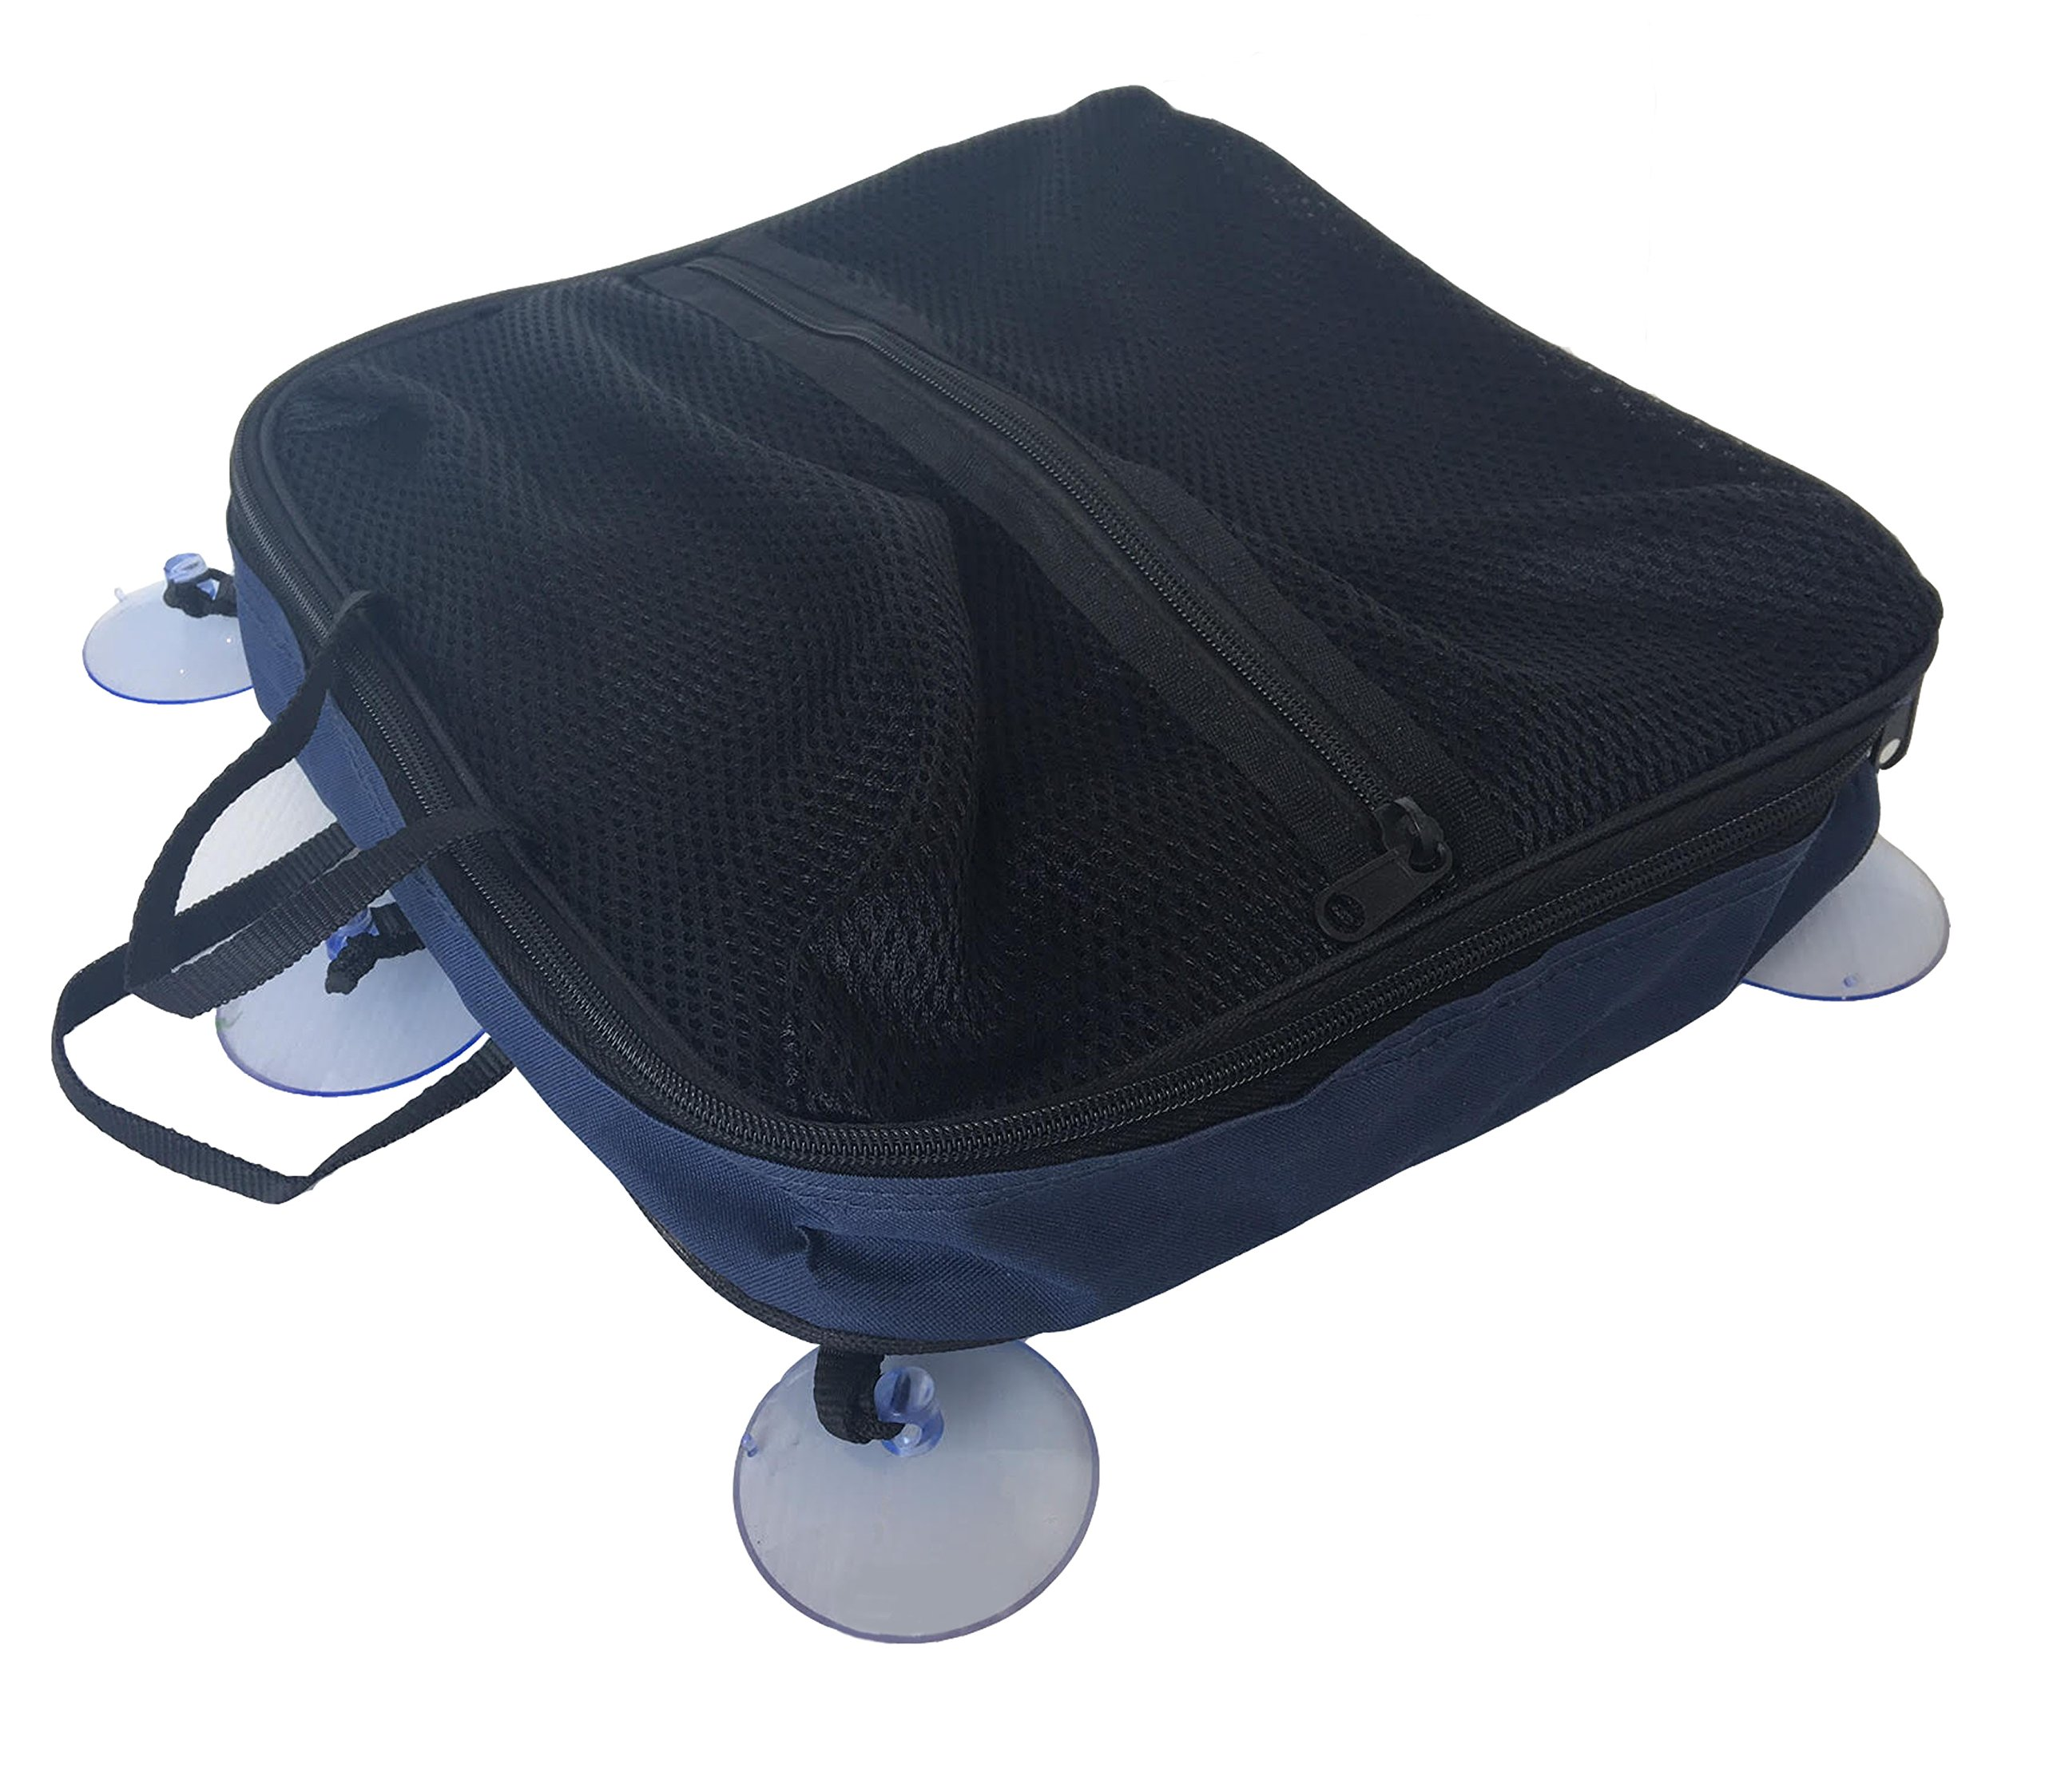 Stand Up Paddleboard Deck Pouch Bag. Features separate mesh compartment & lower compartment for extra storage of your valuables. Incl storage for Sunscreen, Diving Goggles, Water Bottles